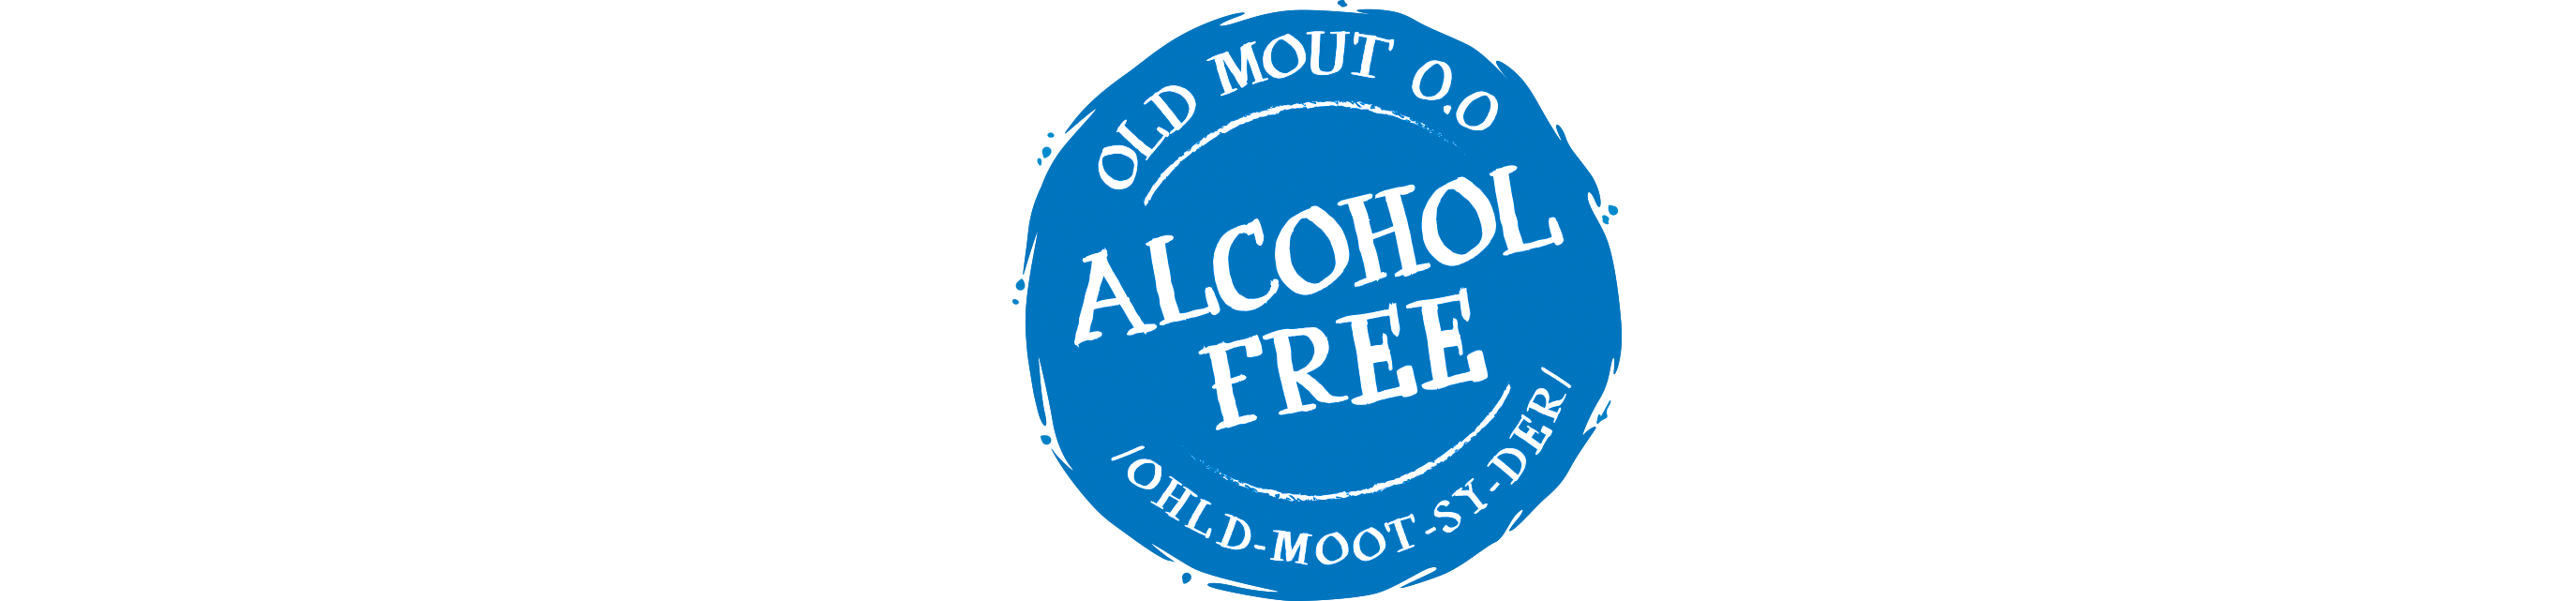 Old Mout Alcohol Free